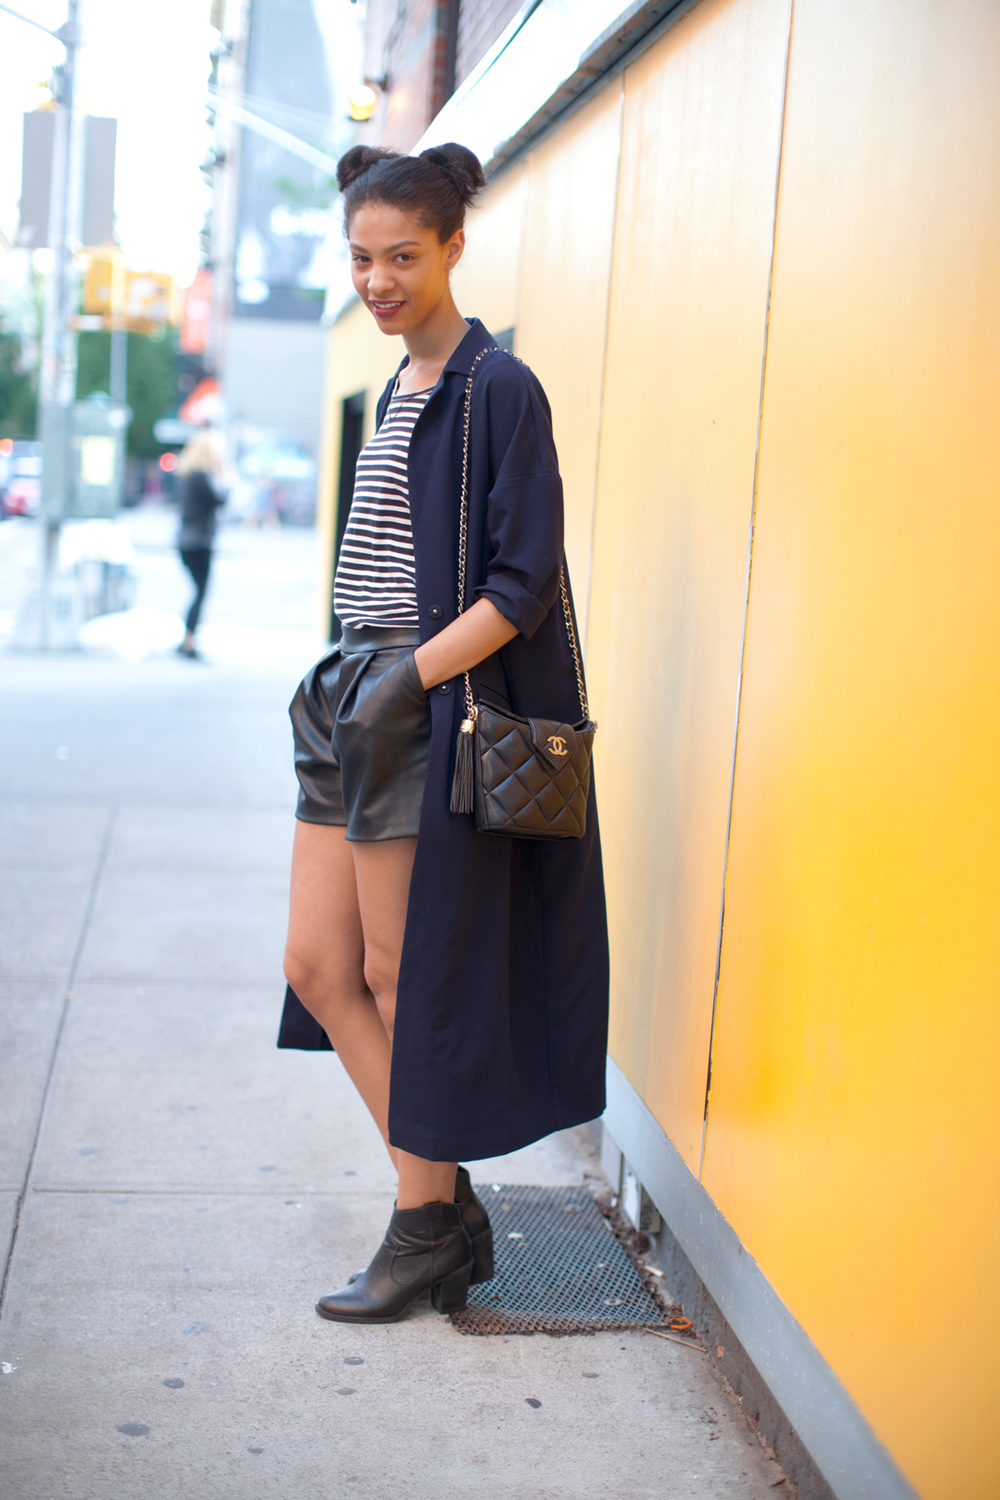 Thanks Refinery ! I wore Asos Overcoat, J.Crew Sailor Top, Zara vegan leather shorts, Chanel bucket bag, H&M boots